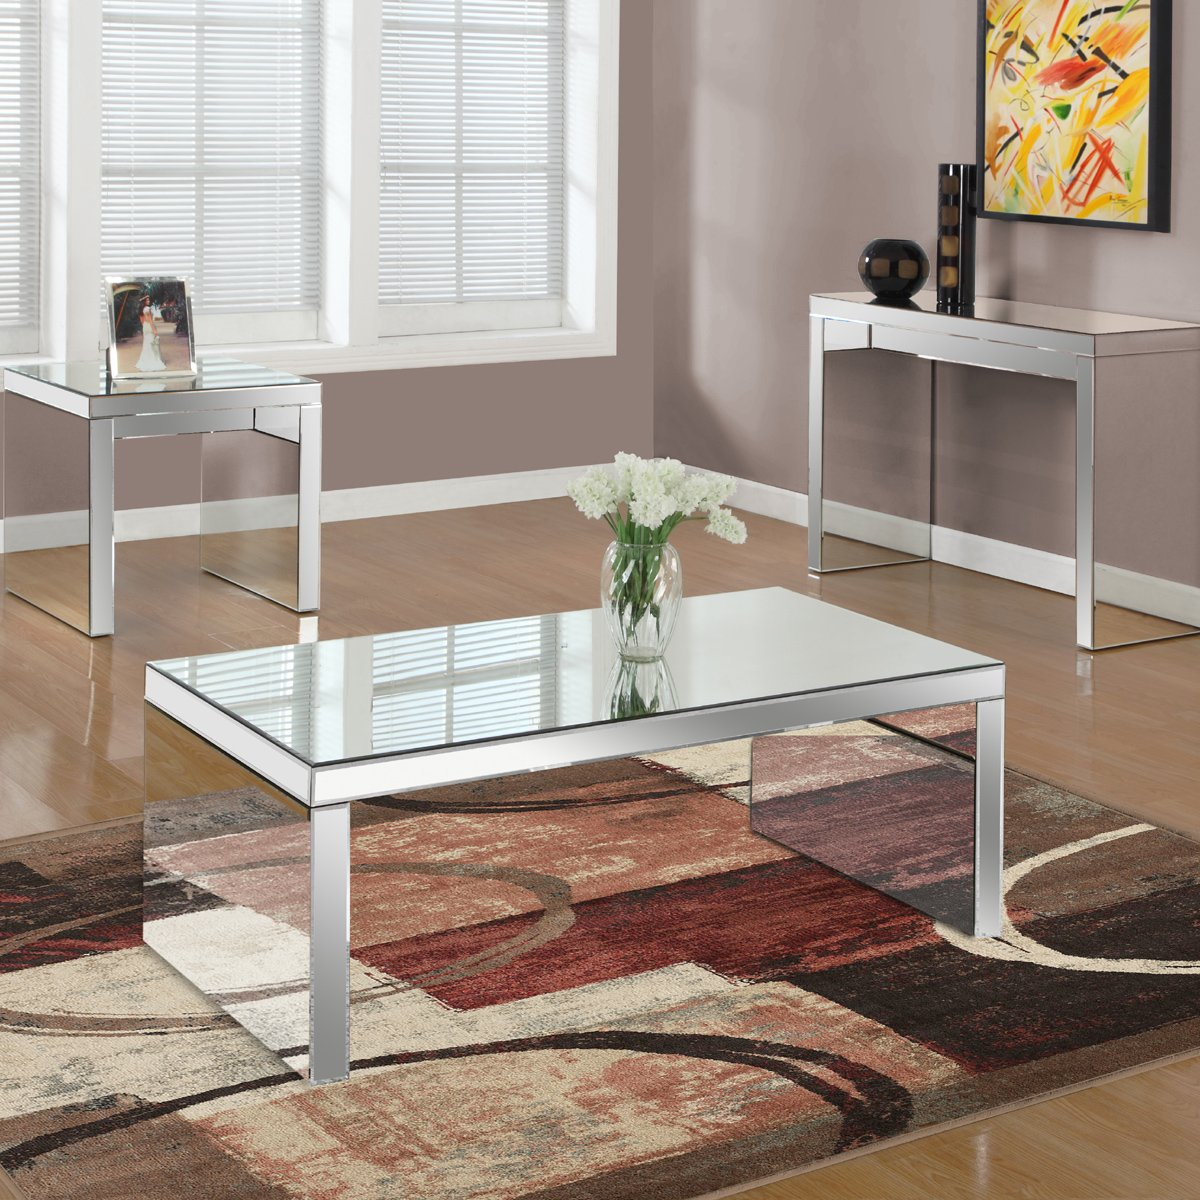 Modgsi modgsi twitter come to our store at bridgeport and grab your evelyn coffee table with mirror top to give a contemporary style to your home geotapseo Choice Image